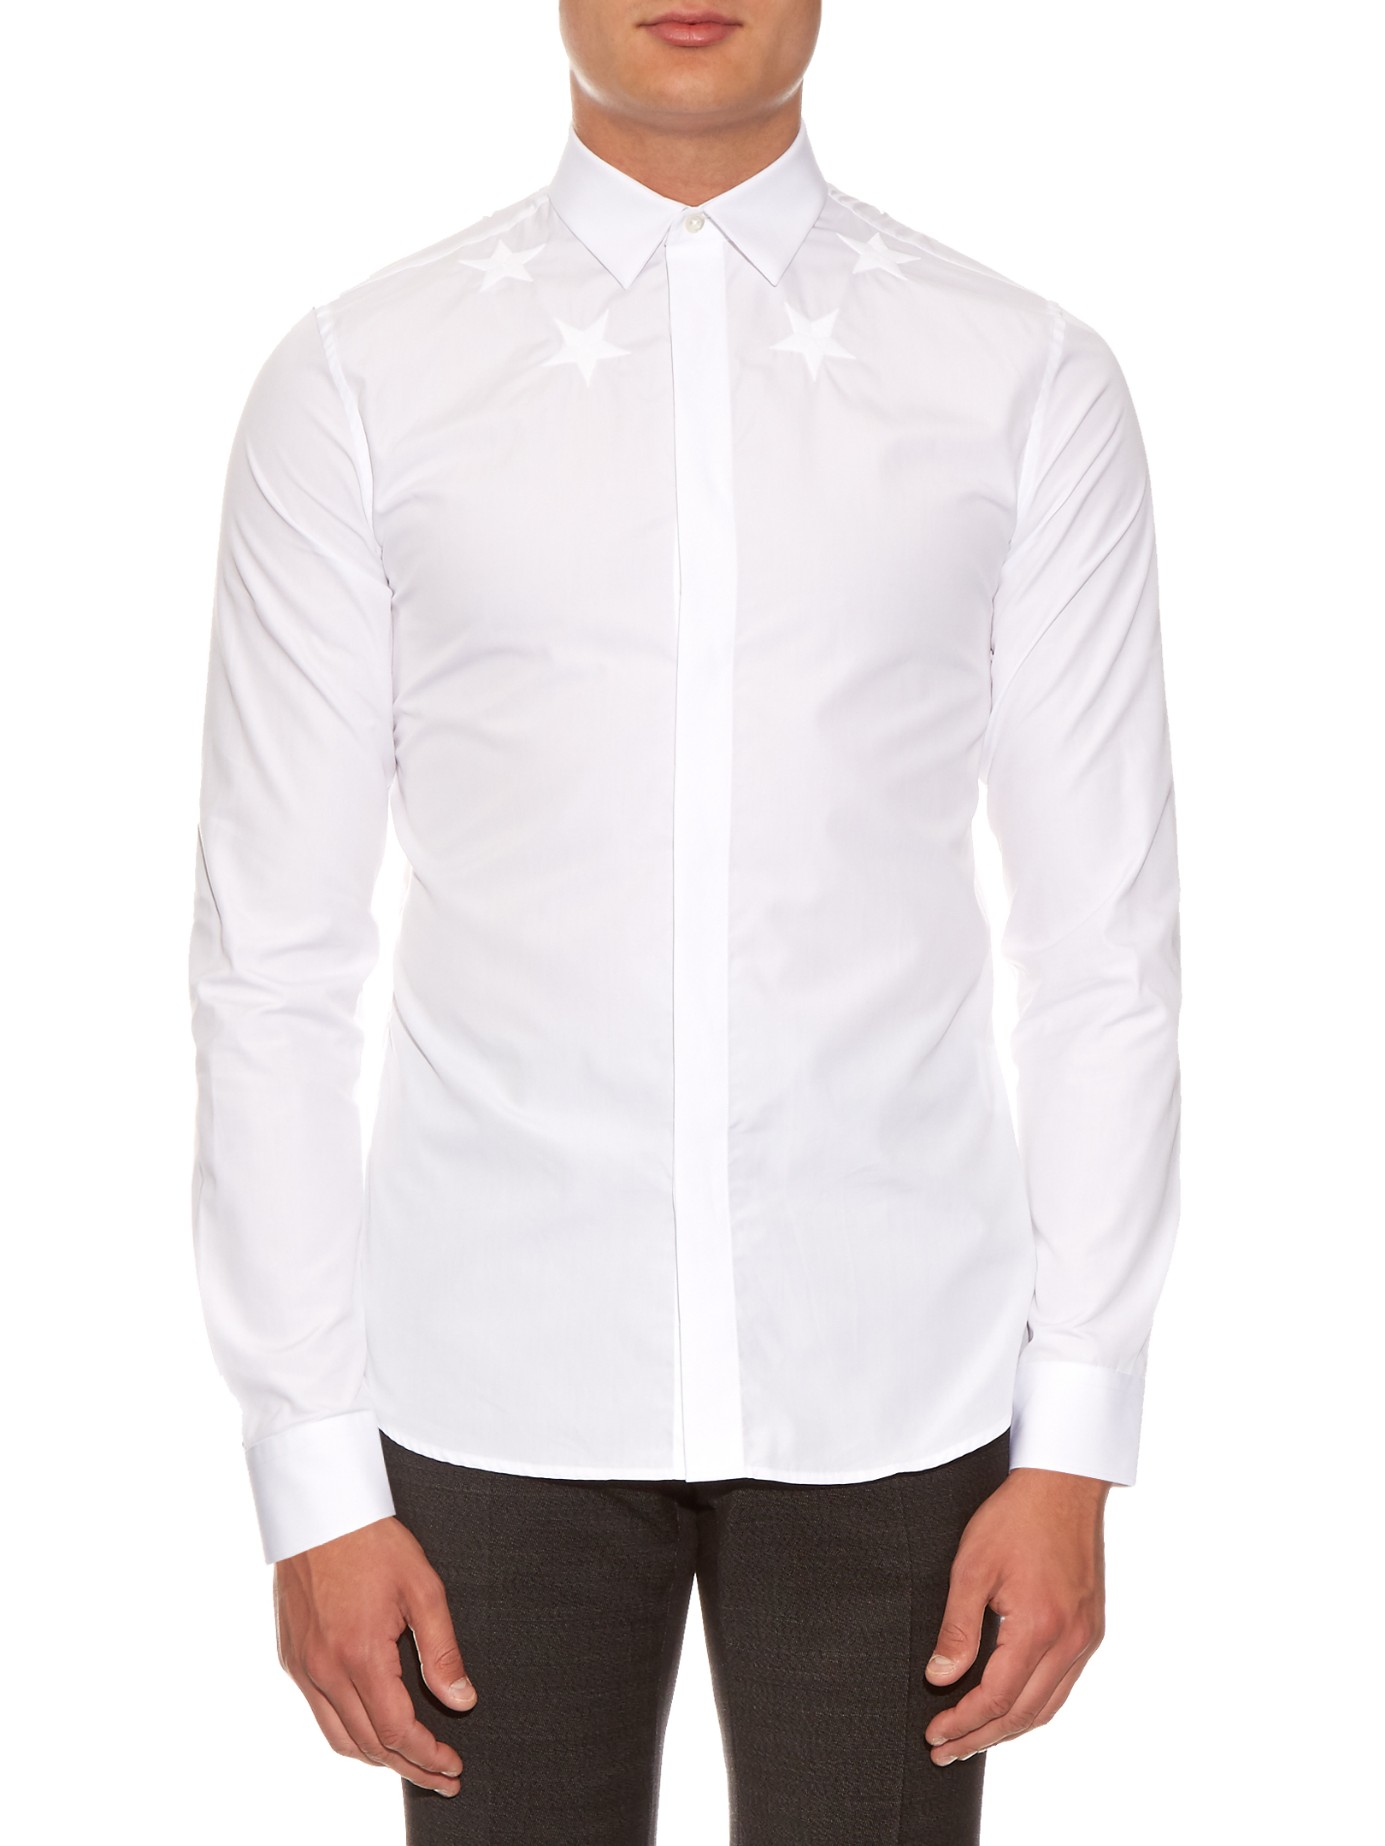 Givenchy stars embroidered button cuff cotton shirt in